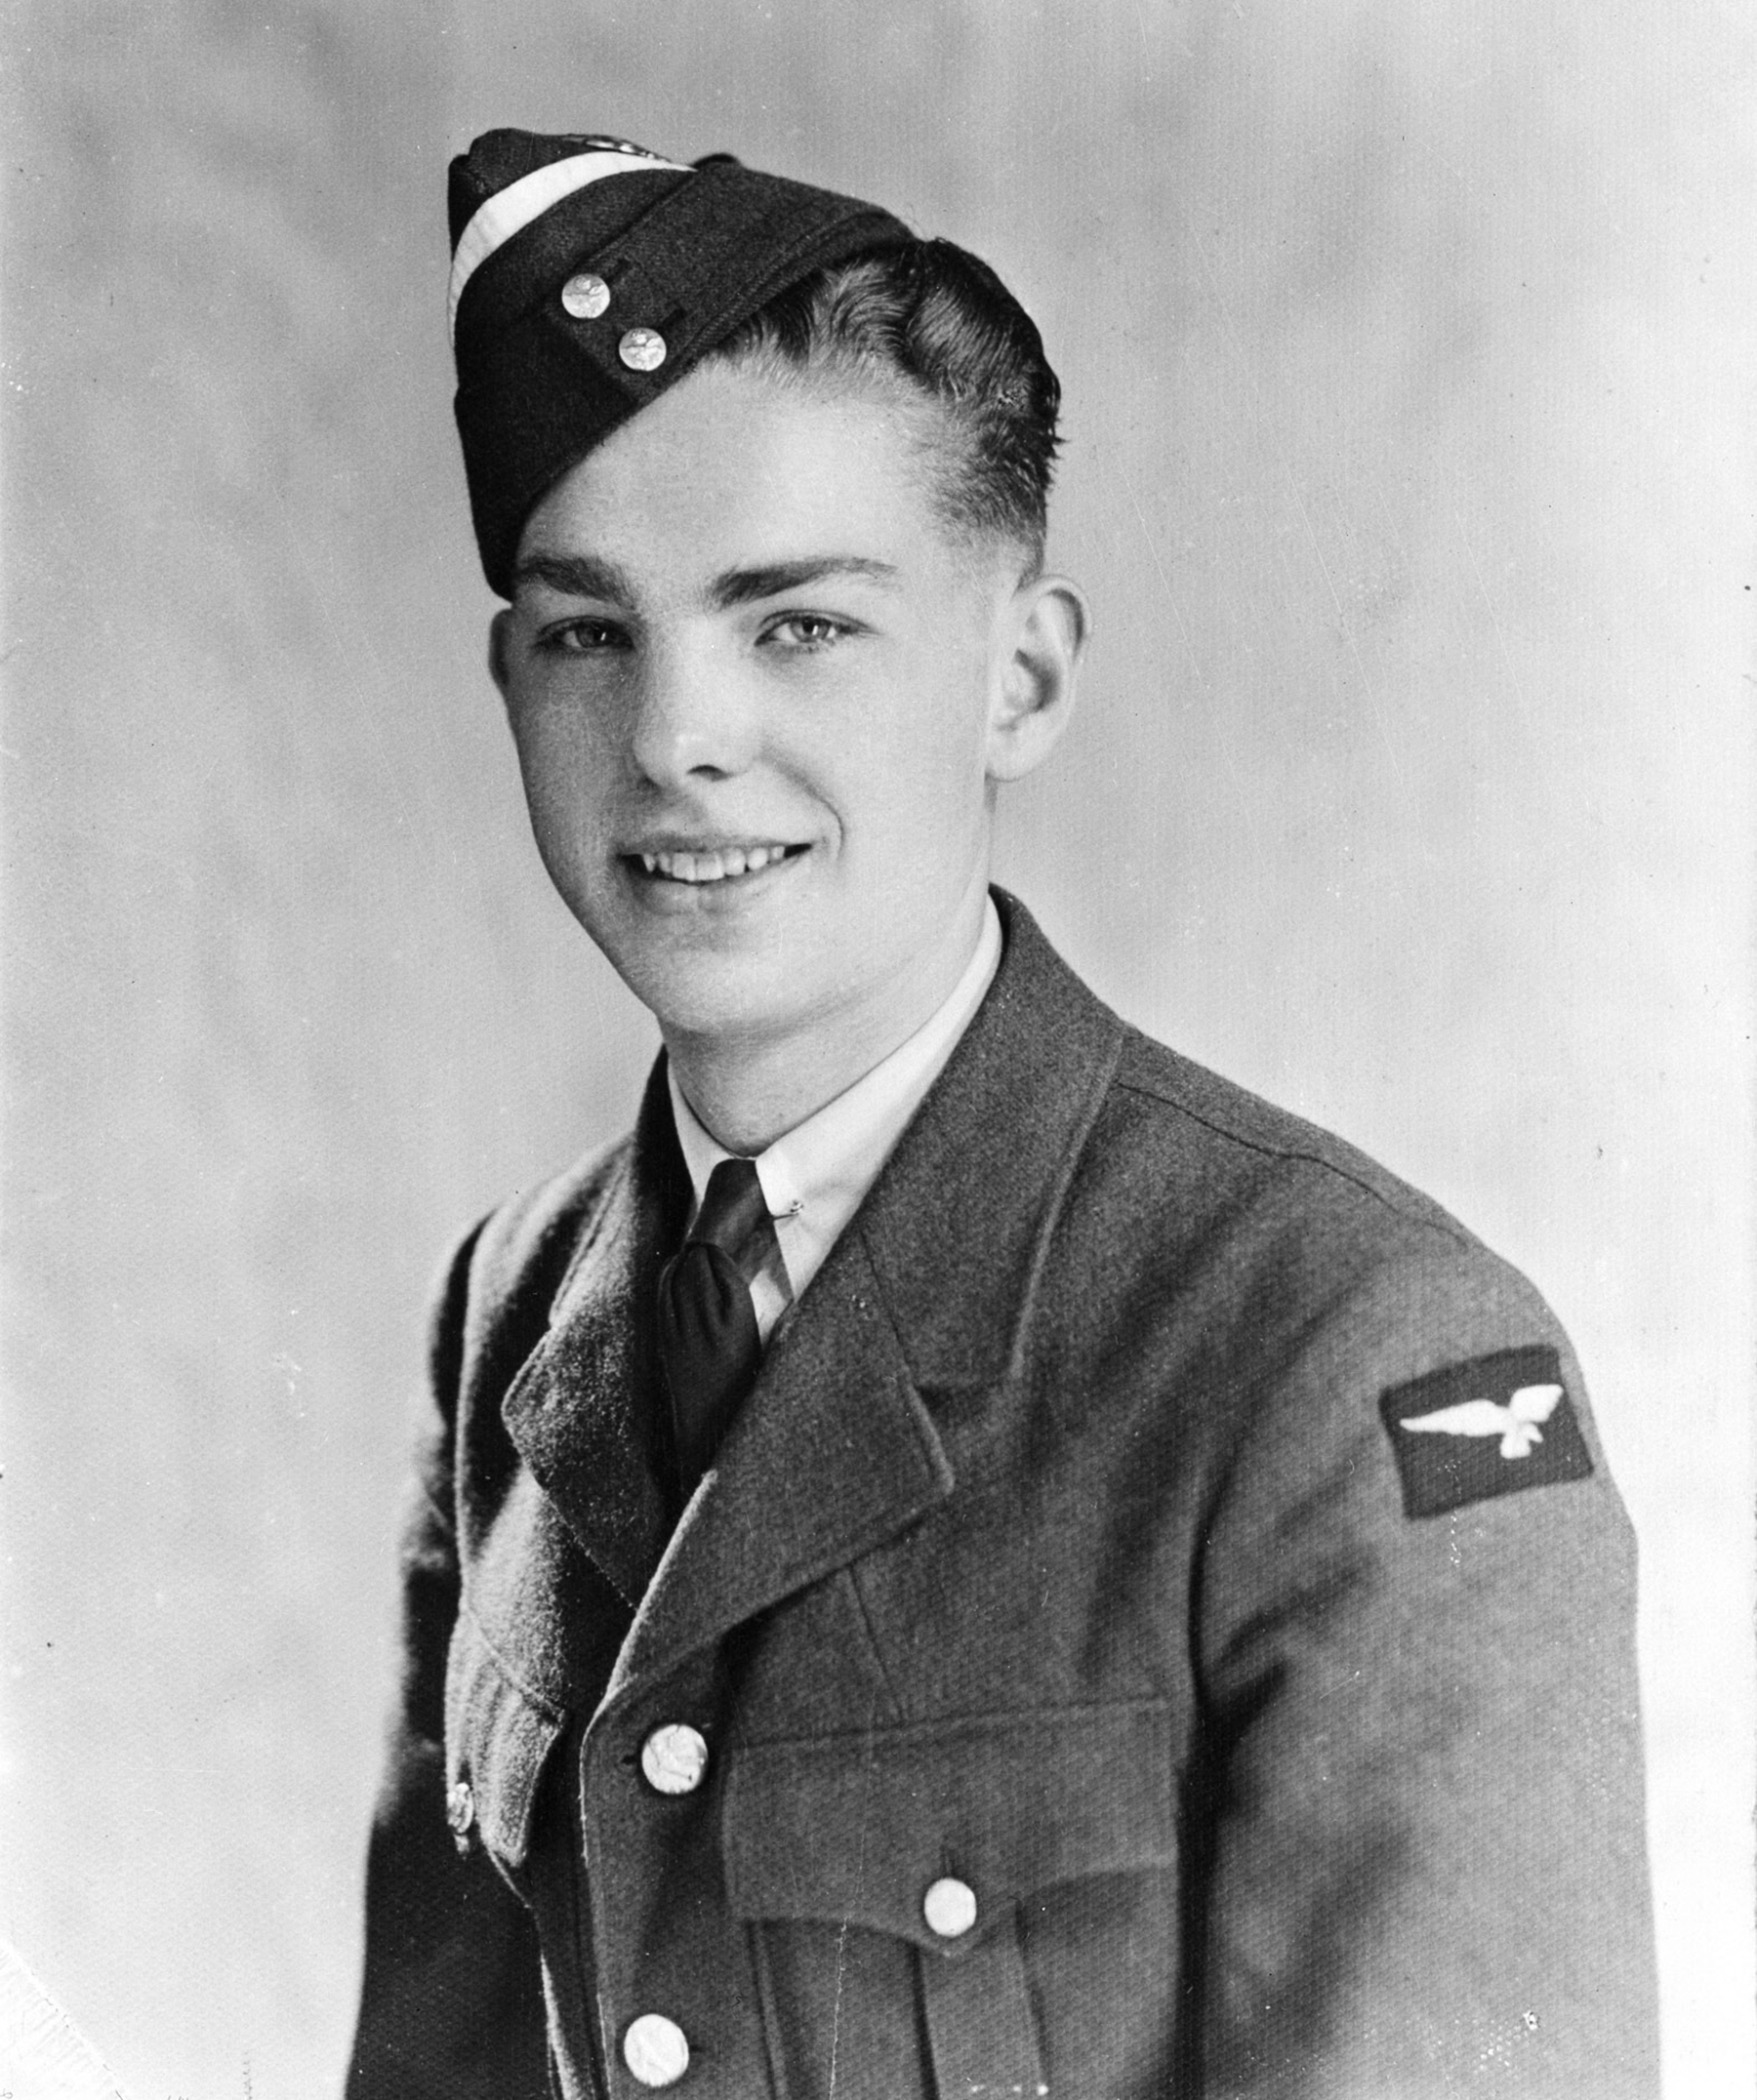 Leading Aircraftman Karl Gravell as photographed in late July, 1941.